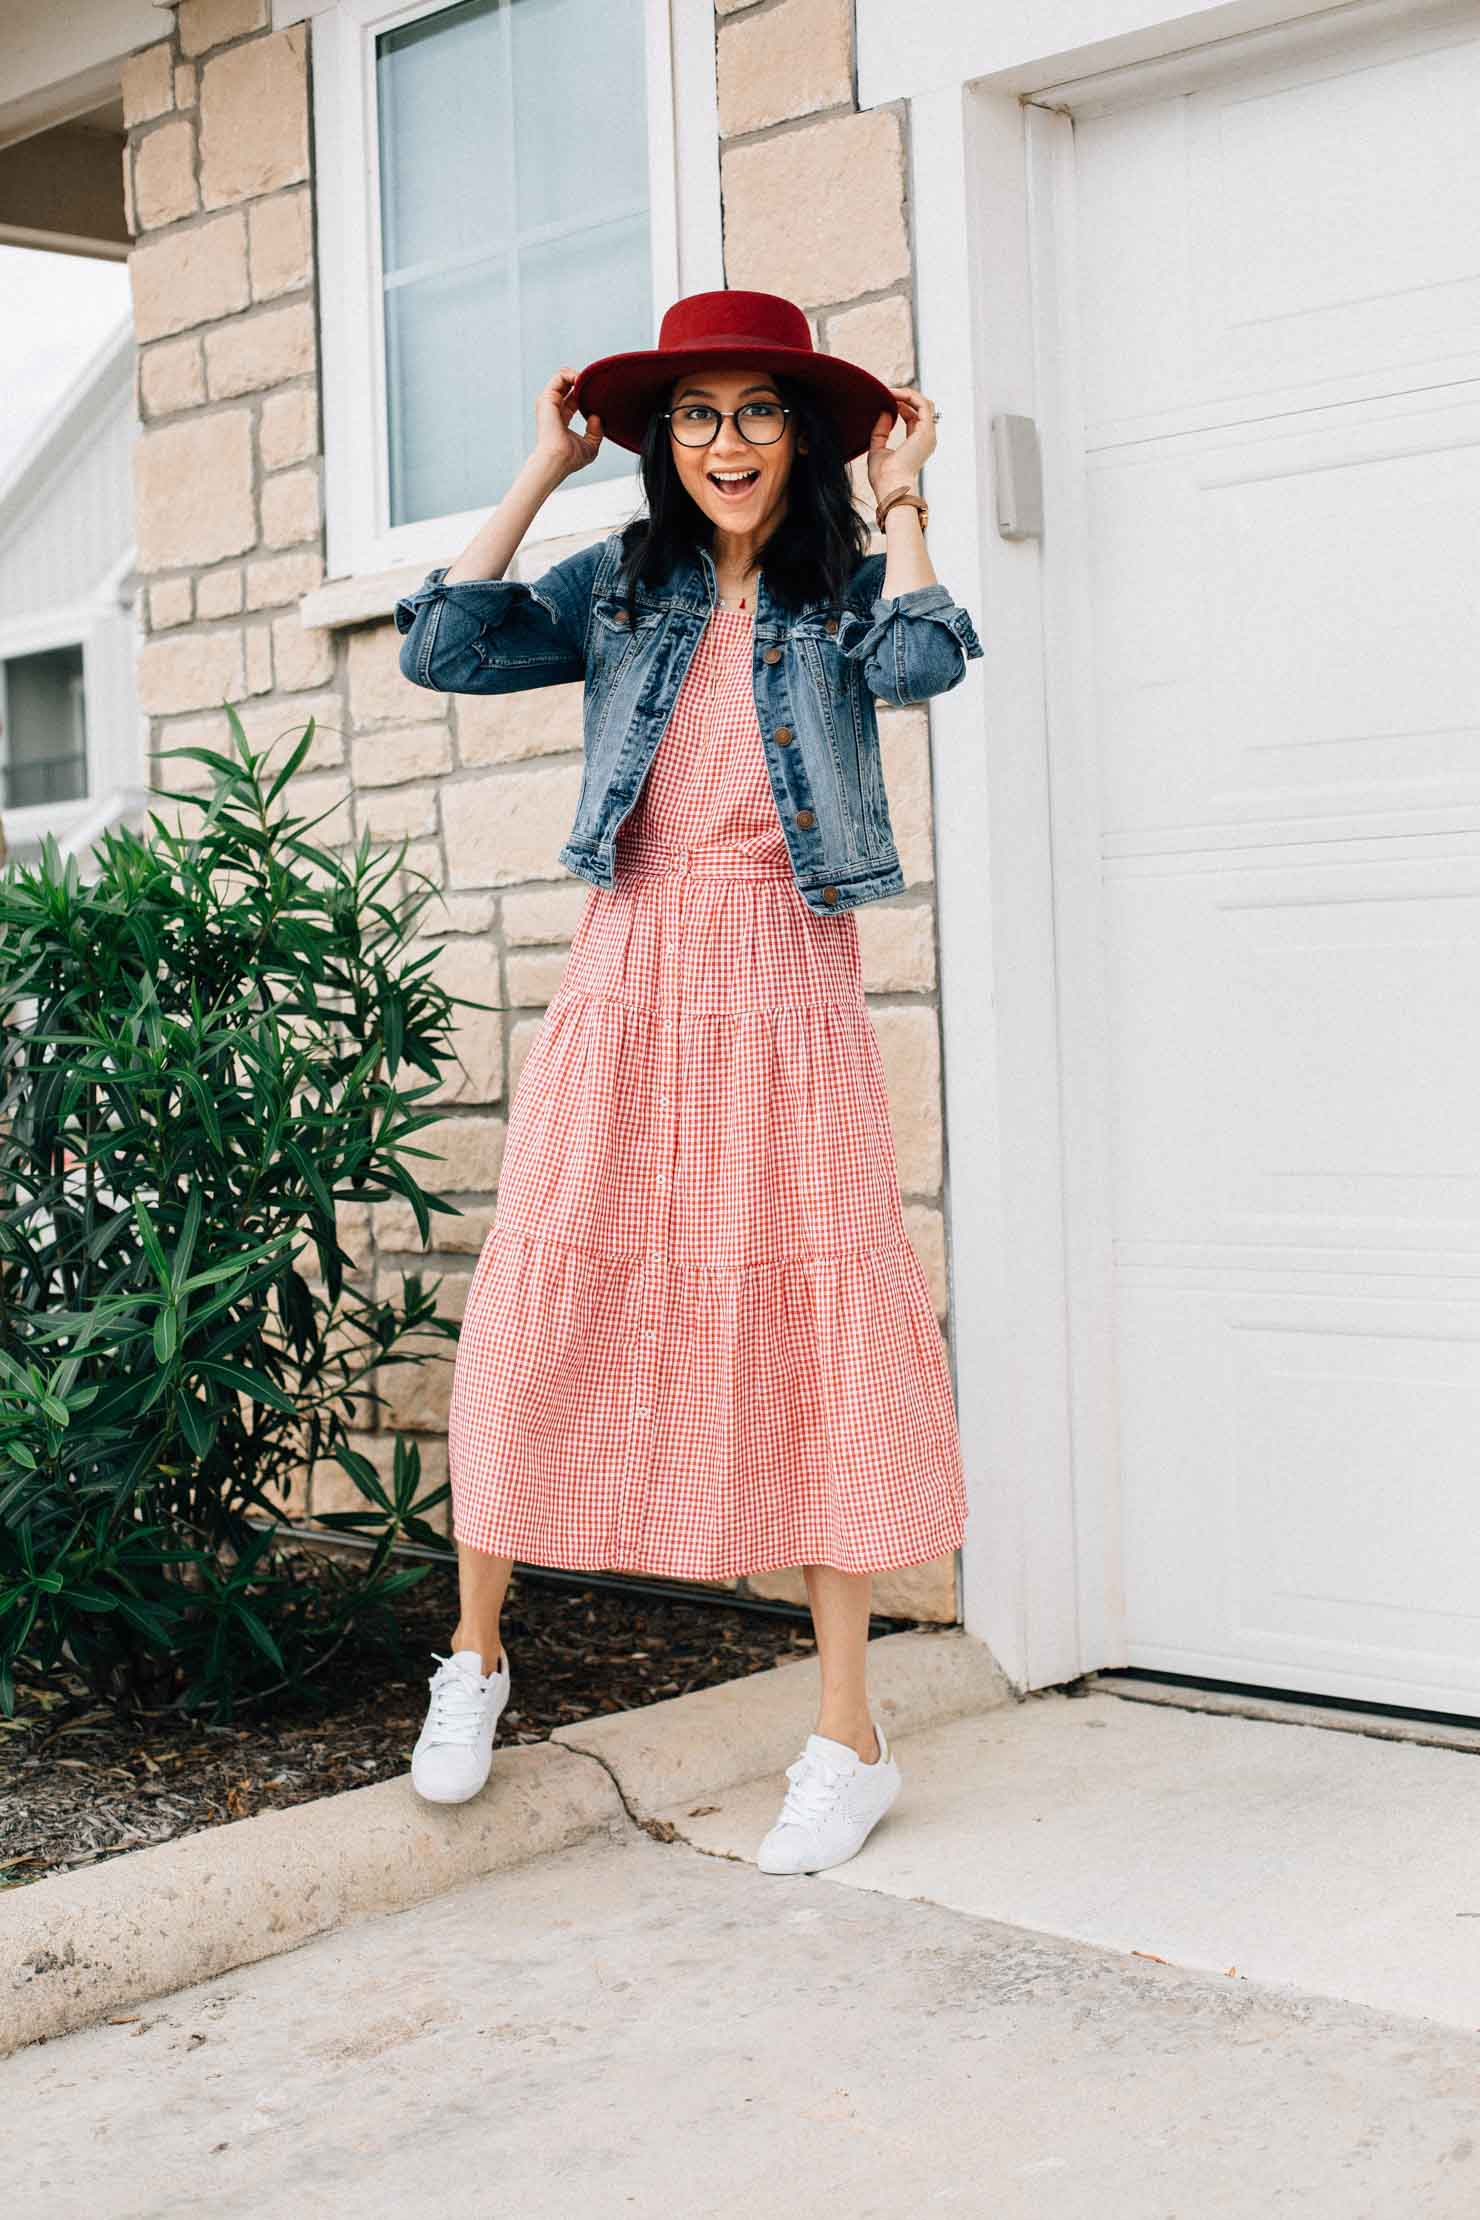 Effortless spring outfit | Gingham set with white sneakers and denim jacket